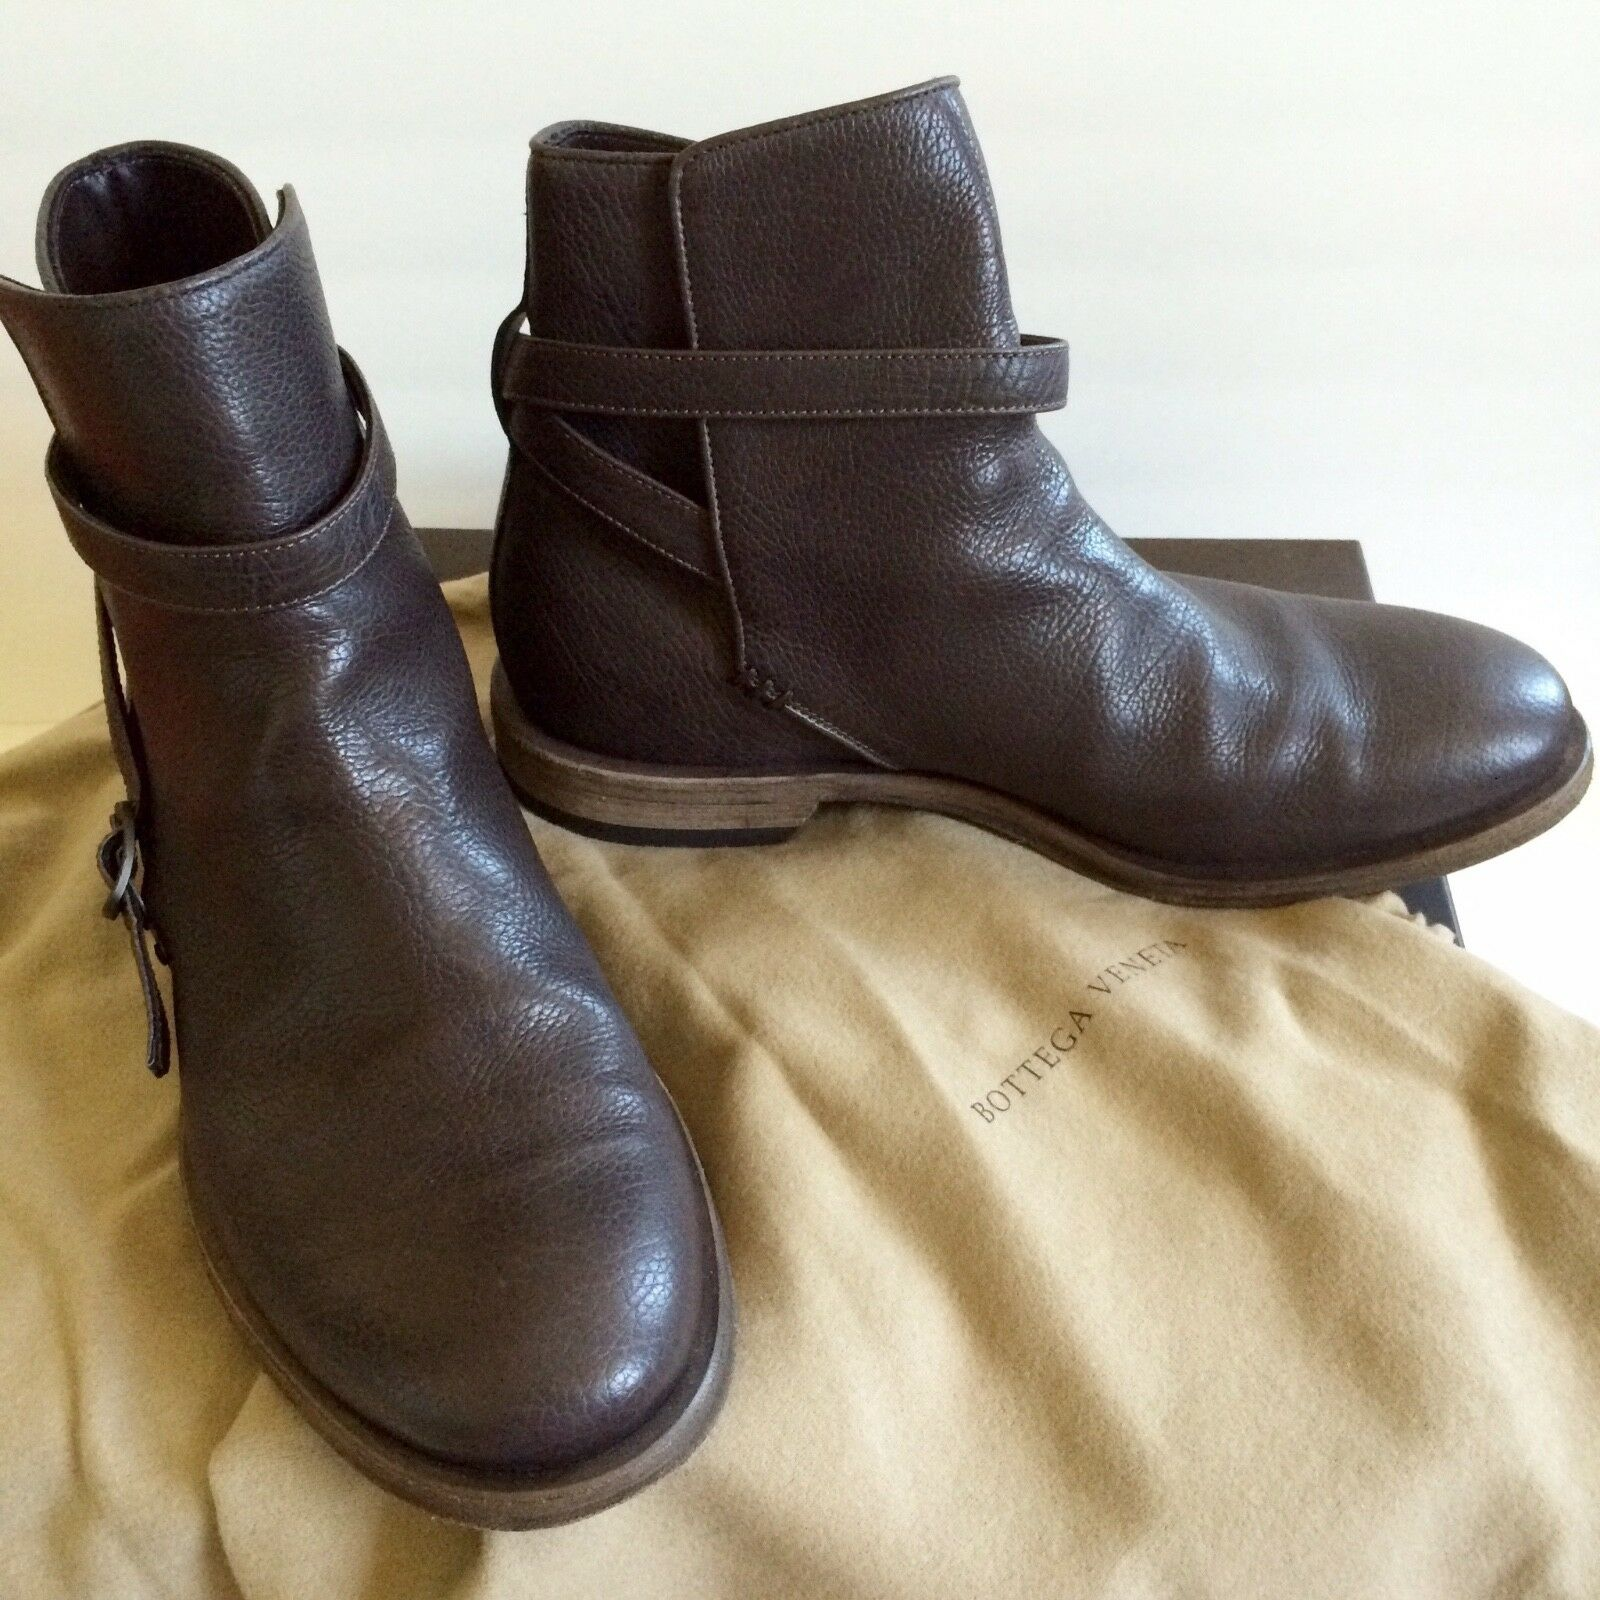 NEW CATERPILLAR CAT STEEL TOE WORK BOOTS MENS 10 STYLE: ELECTRIC BROWN